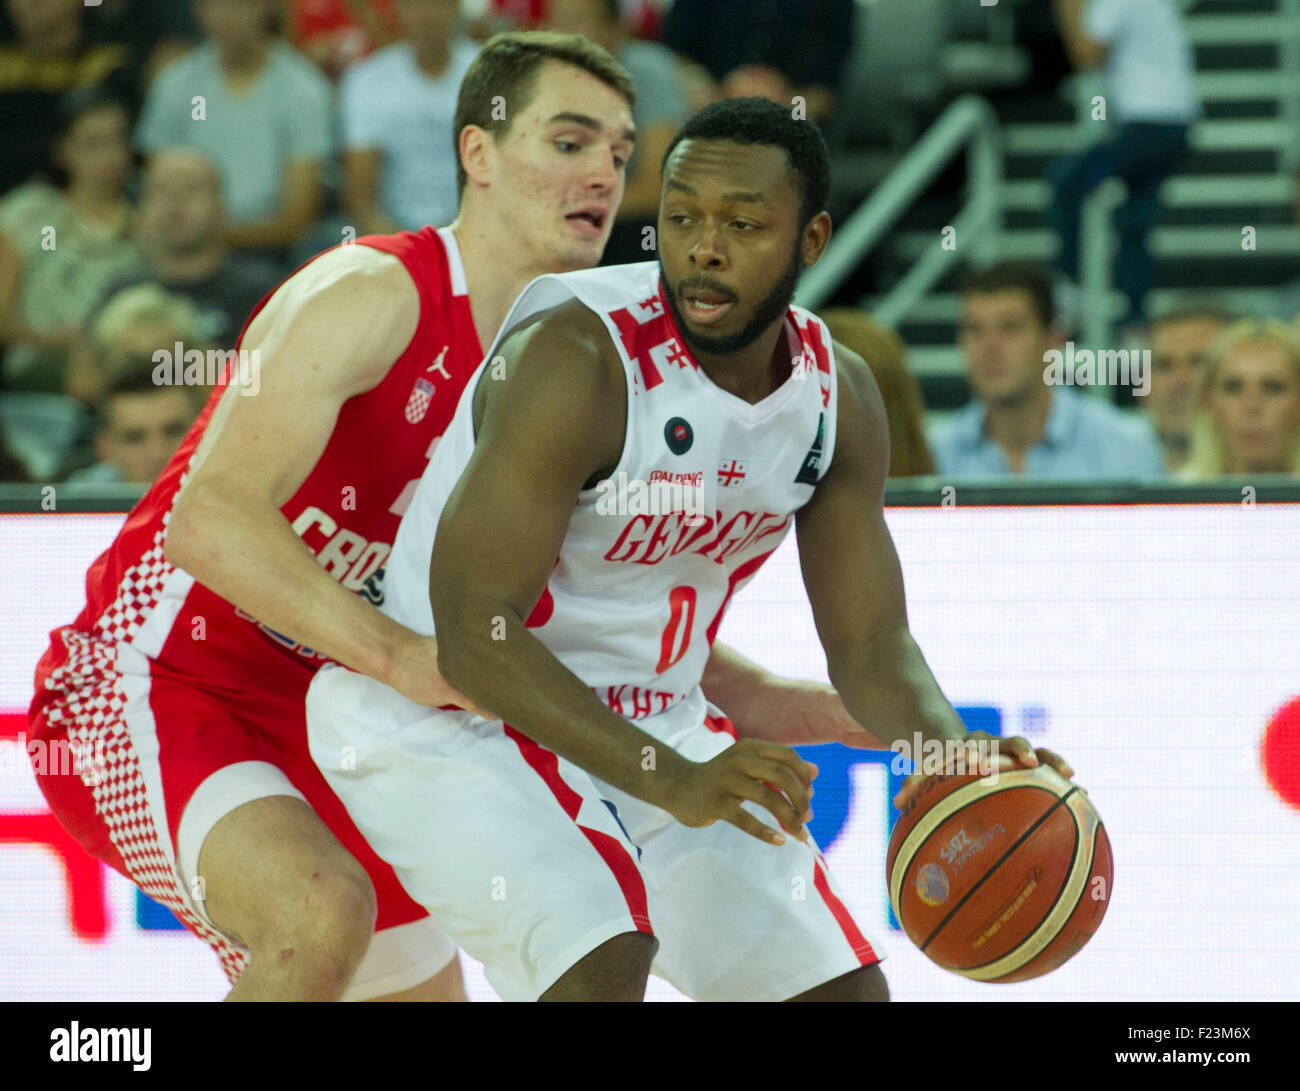 Zagreb, Croatia. 10th Sep, 2015. Jacob Pullen (R) of Georgia guards the ball against Mario Hezonja of Croatia during - Stock Image